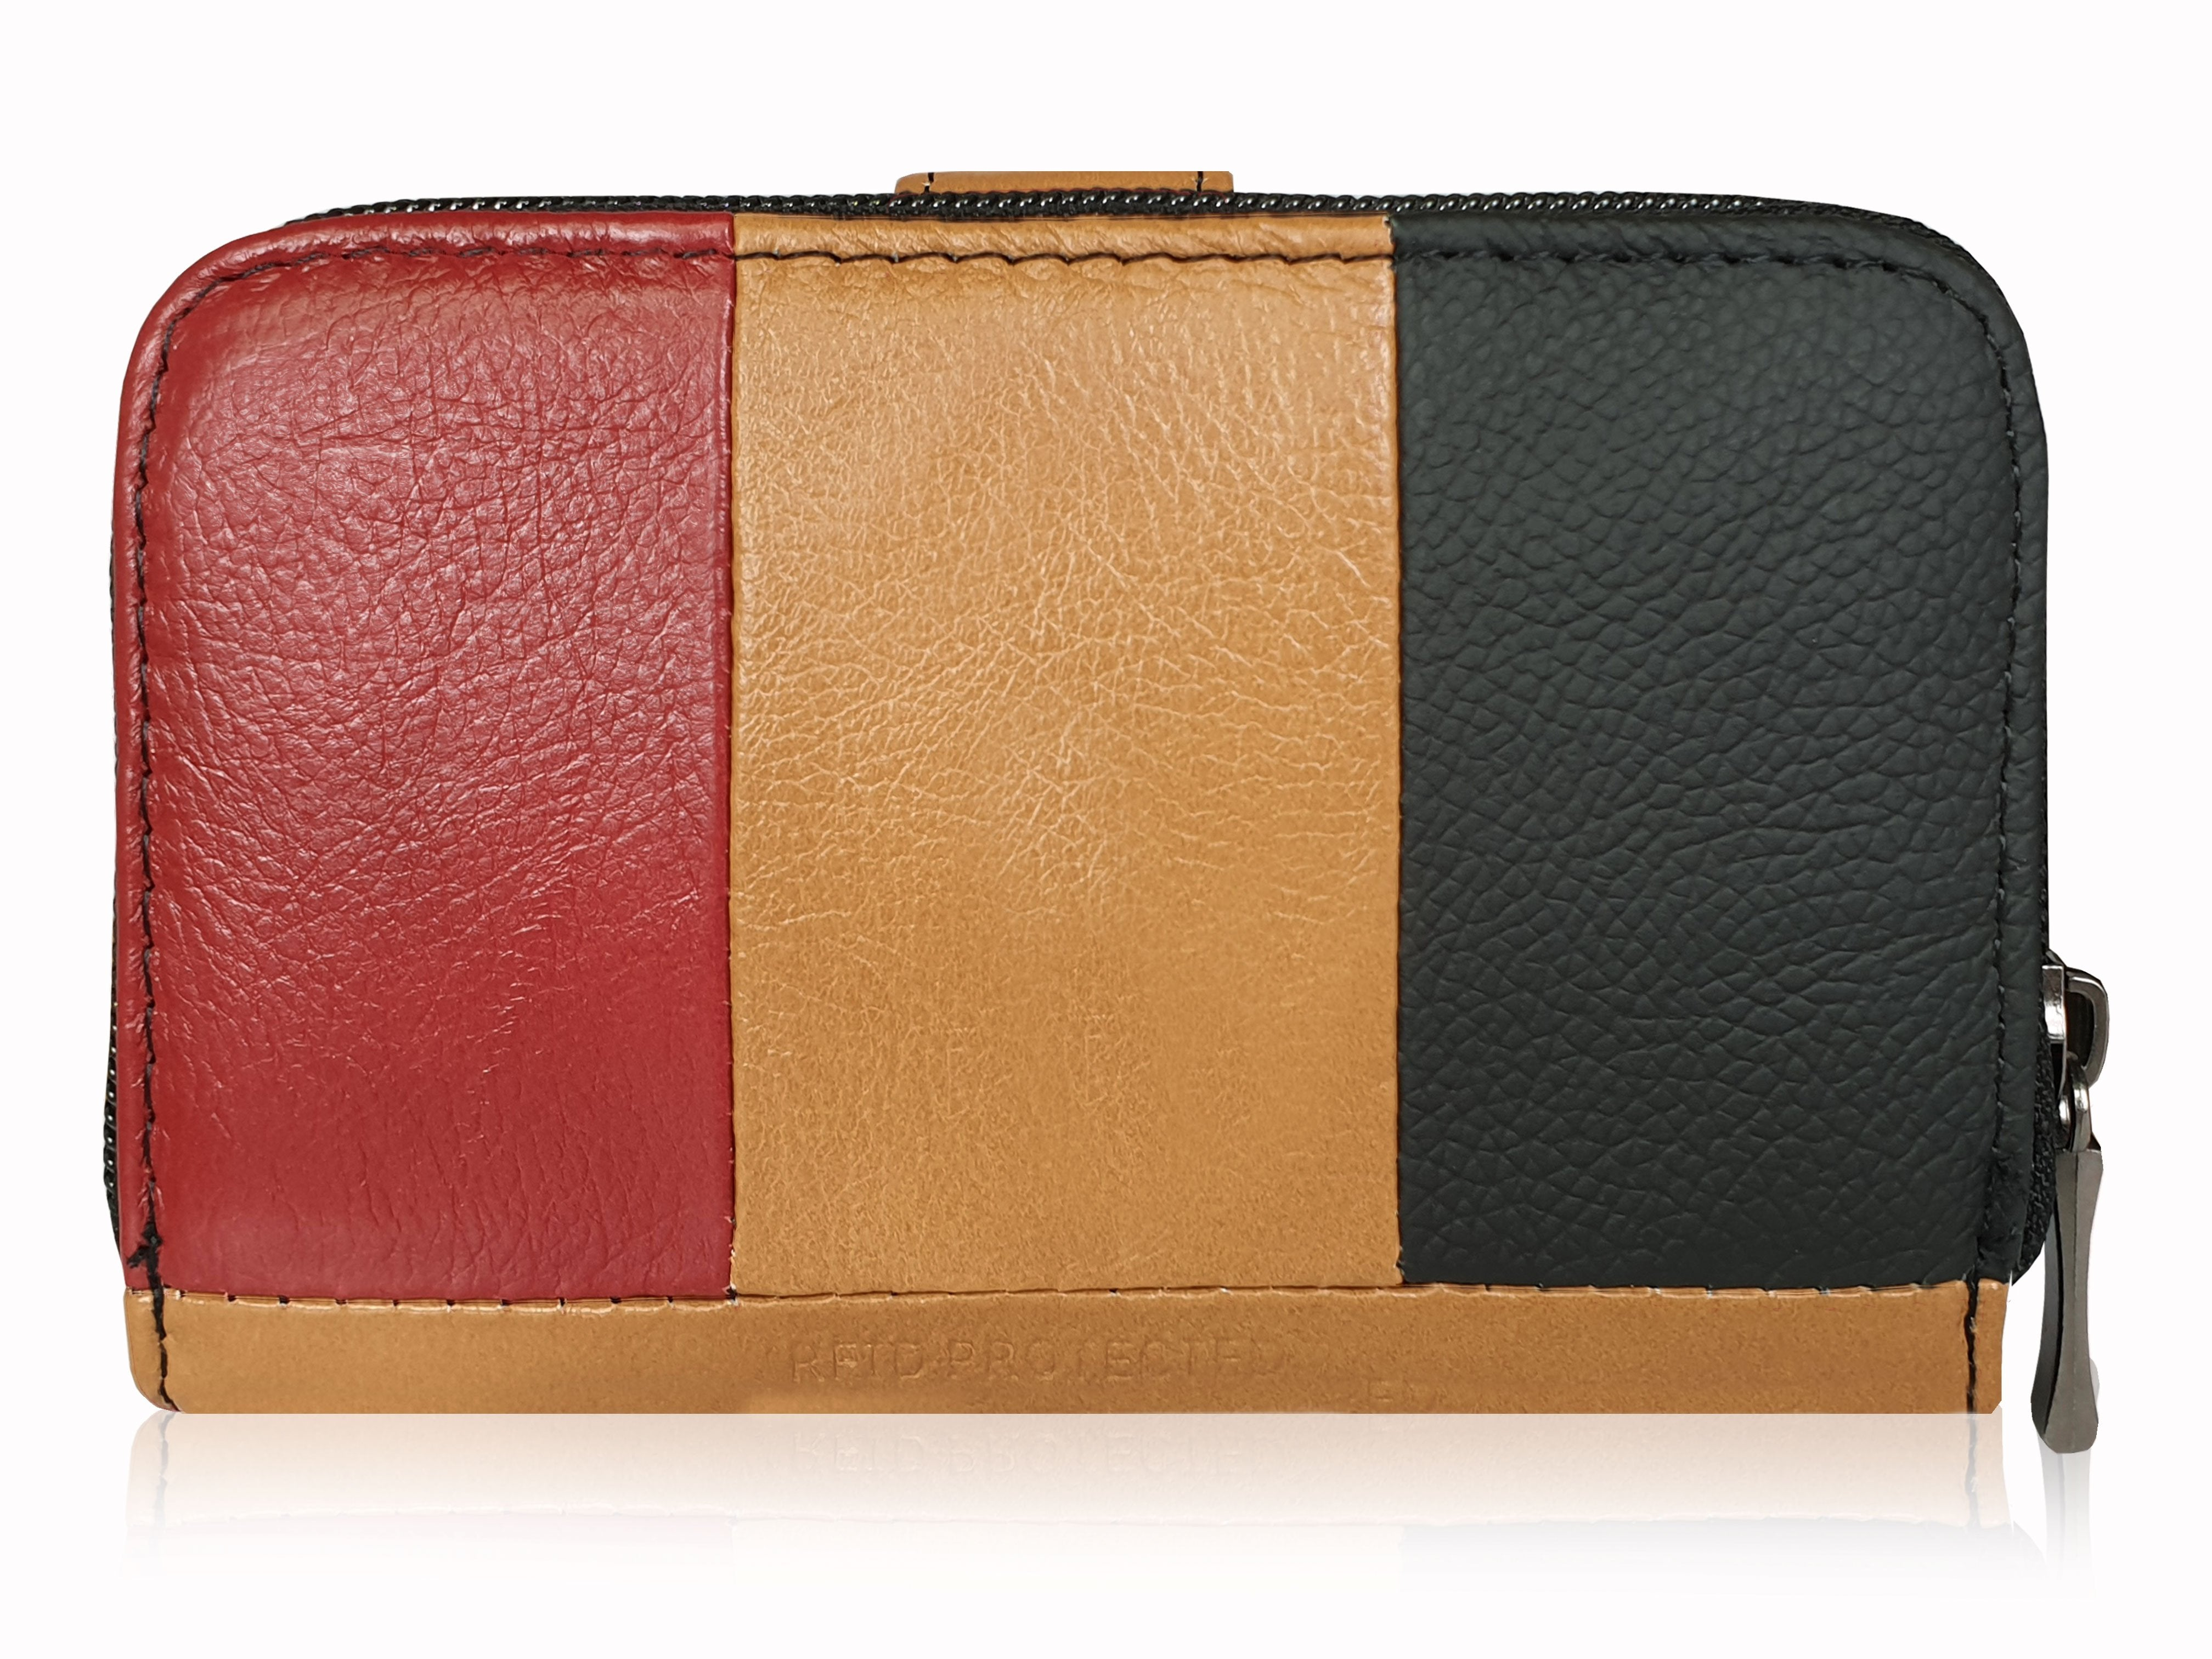 Real Leather Womens Purse - Multi Coloured, Designer, RFID Blocking